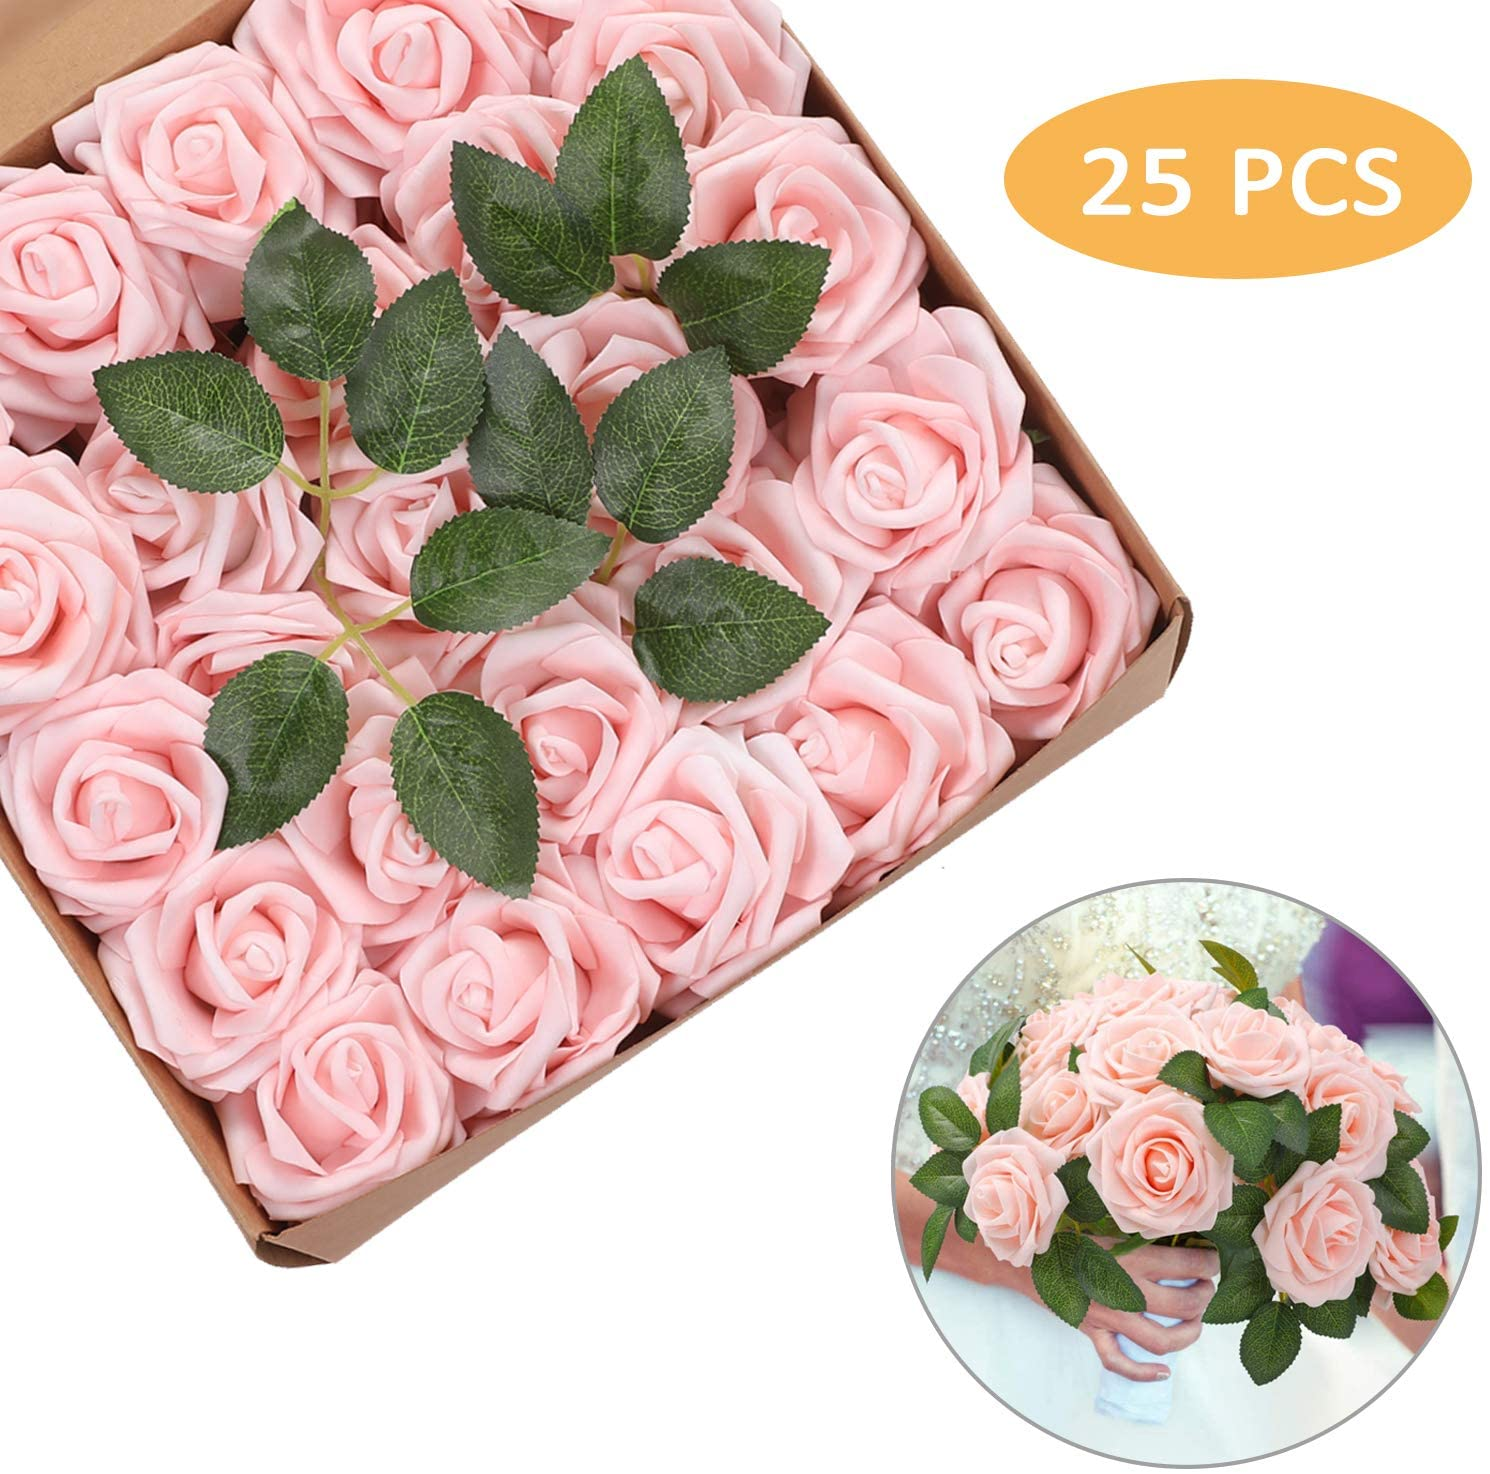 Artificial Flowers Roses 25pcs Red Roses Wedding Decoration Real Looking Fake Roses w/Stem for DIY Wedding Bouquets Centerpieces Arrangements Party Baby Showers Home Decorations (Pink, 25 pcs)